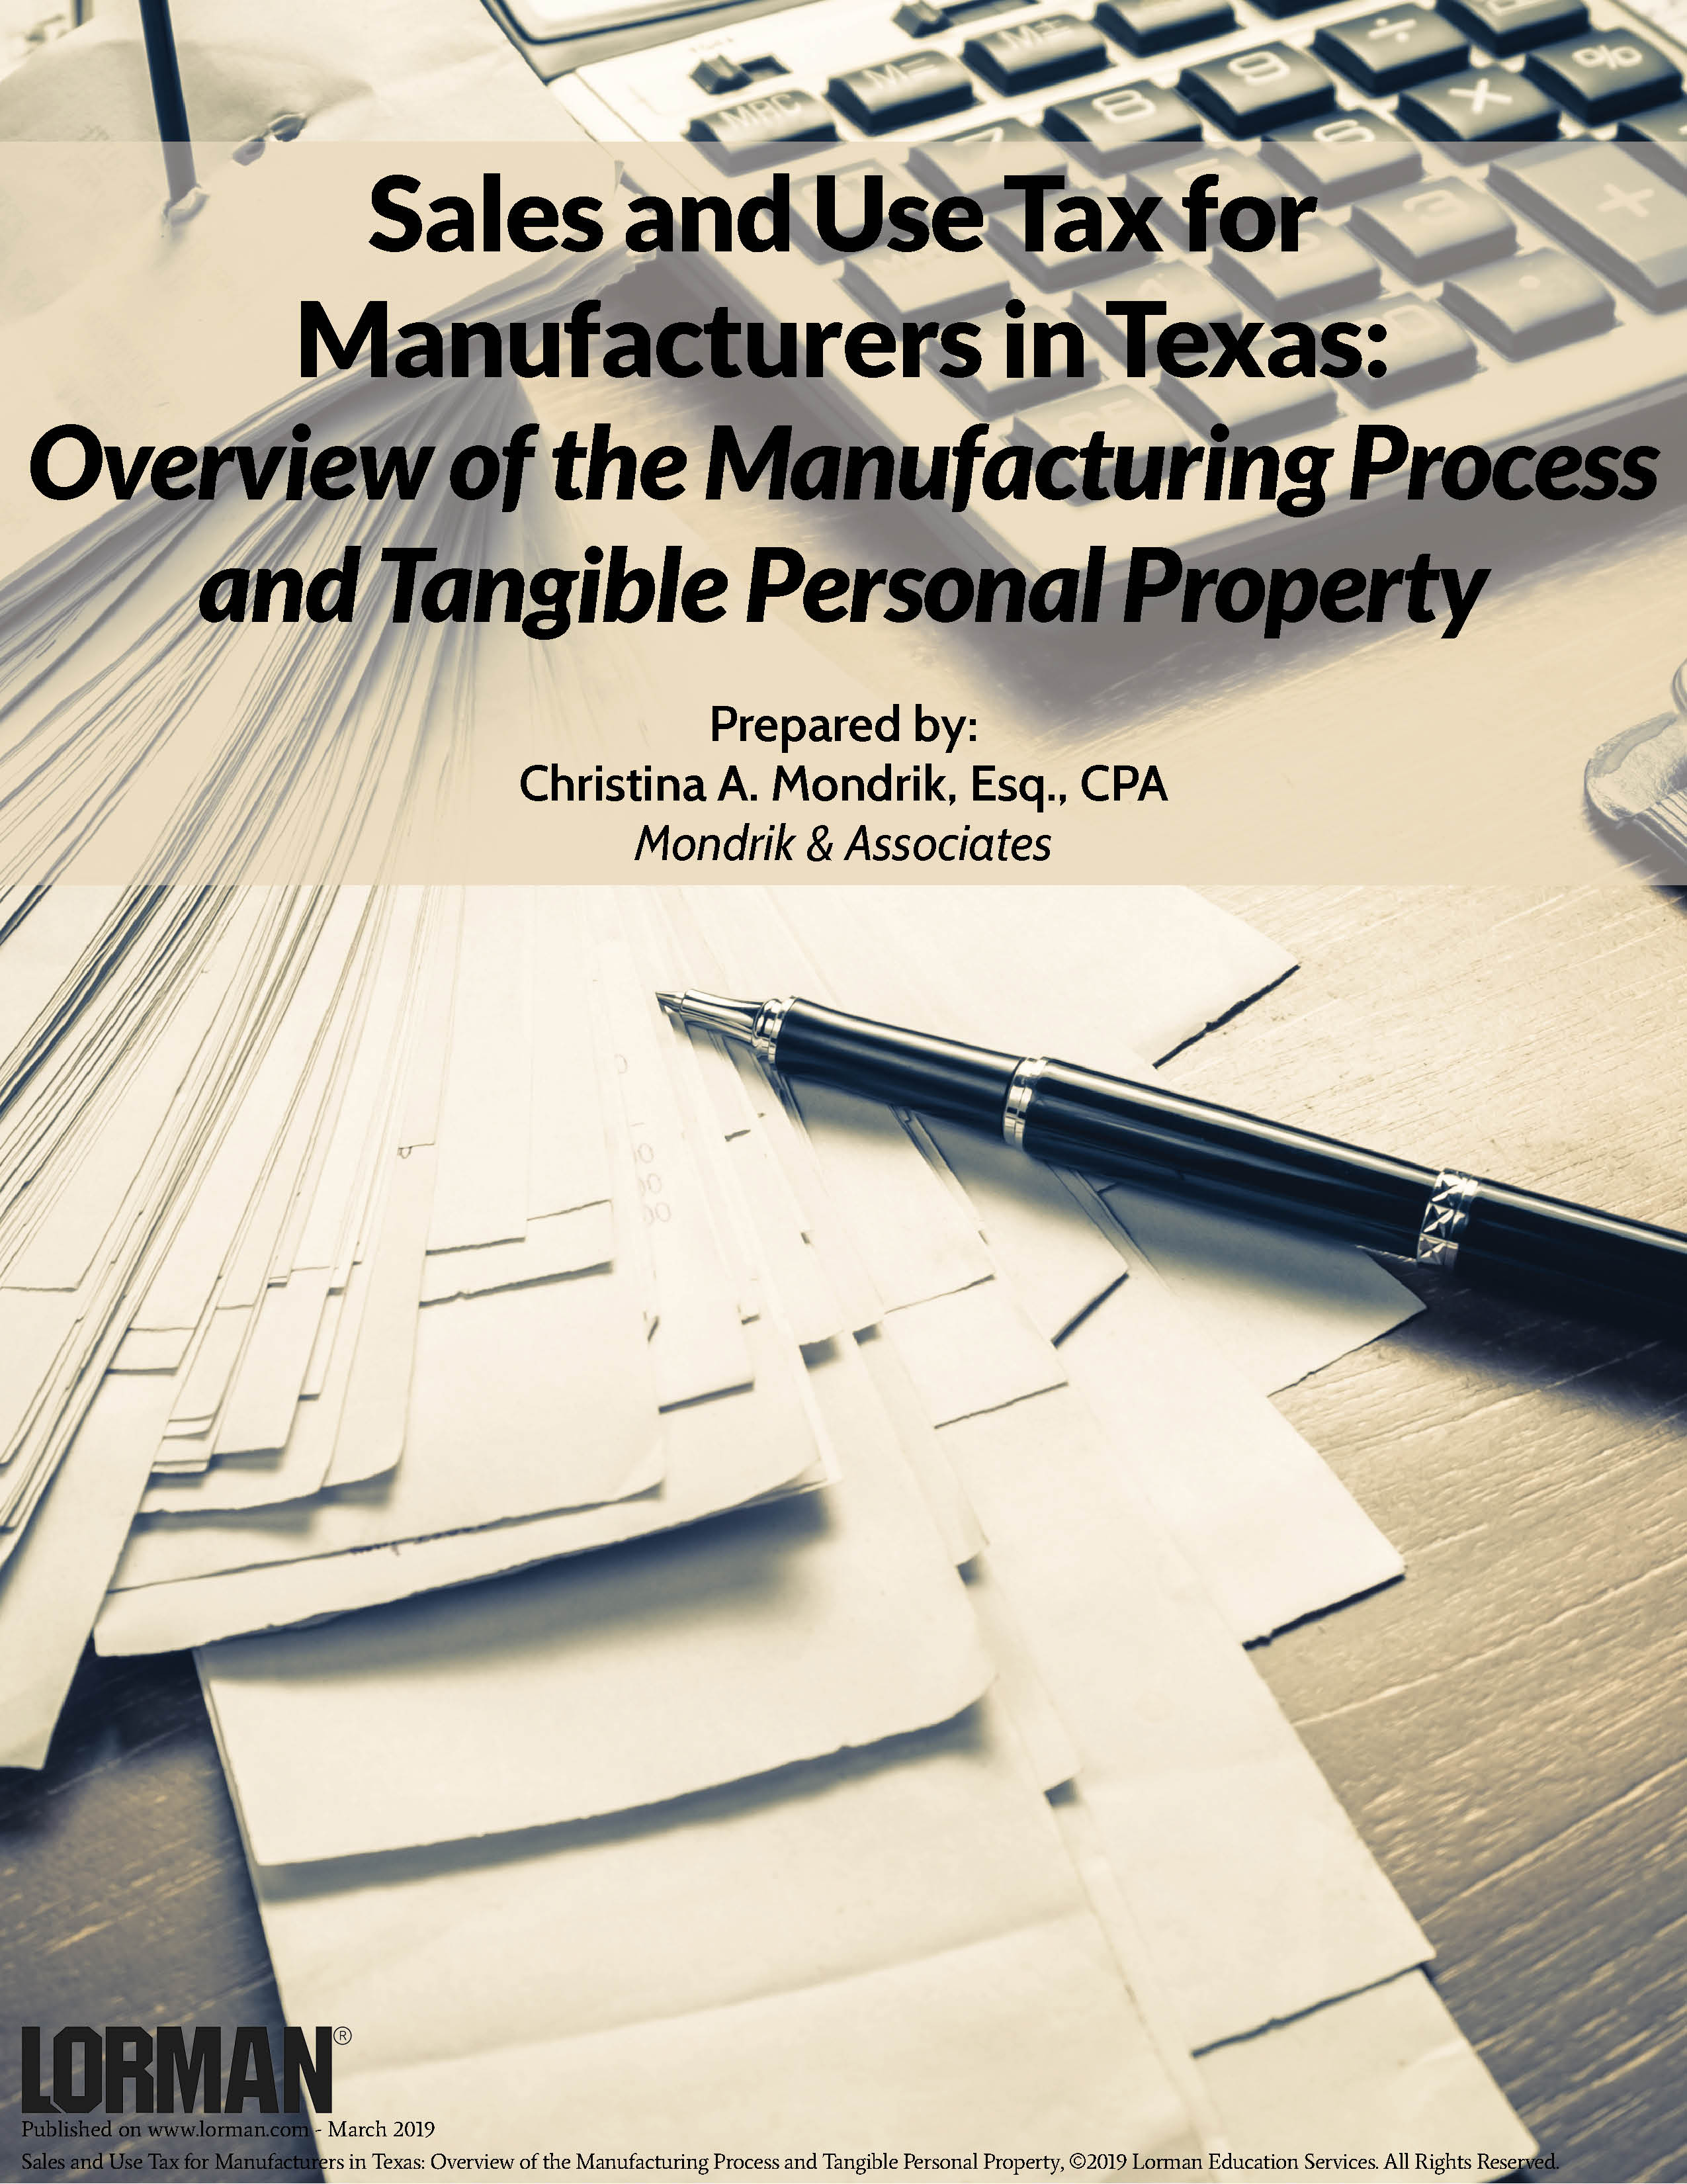 Sales and Use Tax for Manufacturers in Texas: Manufacturing Process and Tangible Personal Property